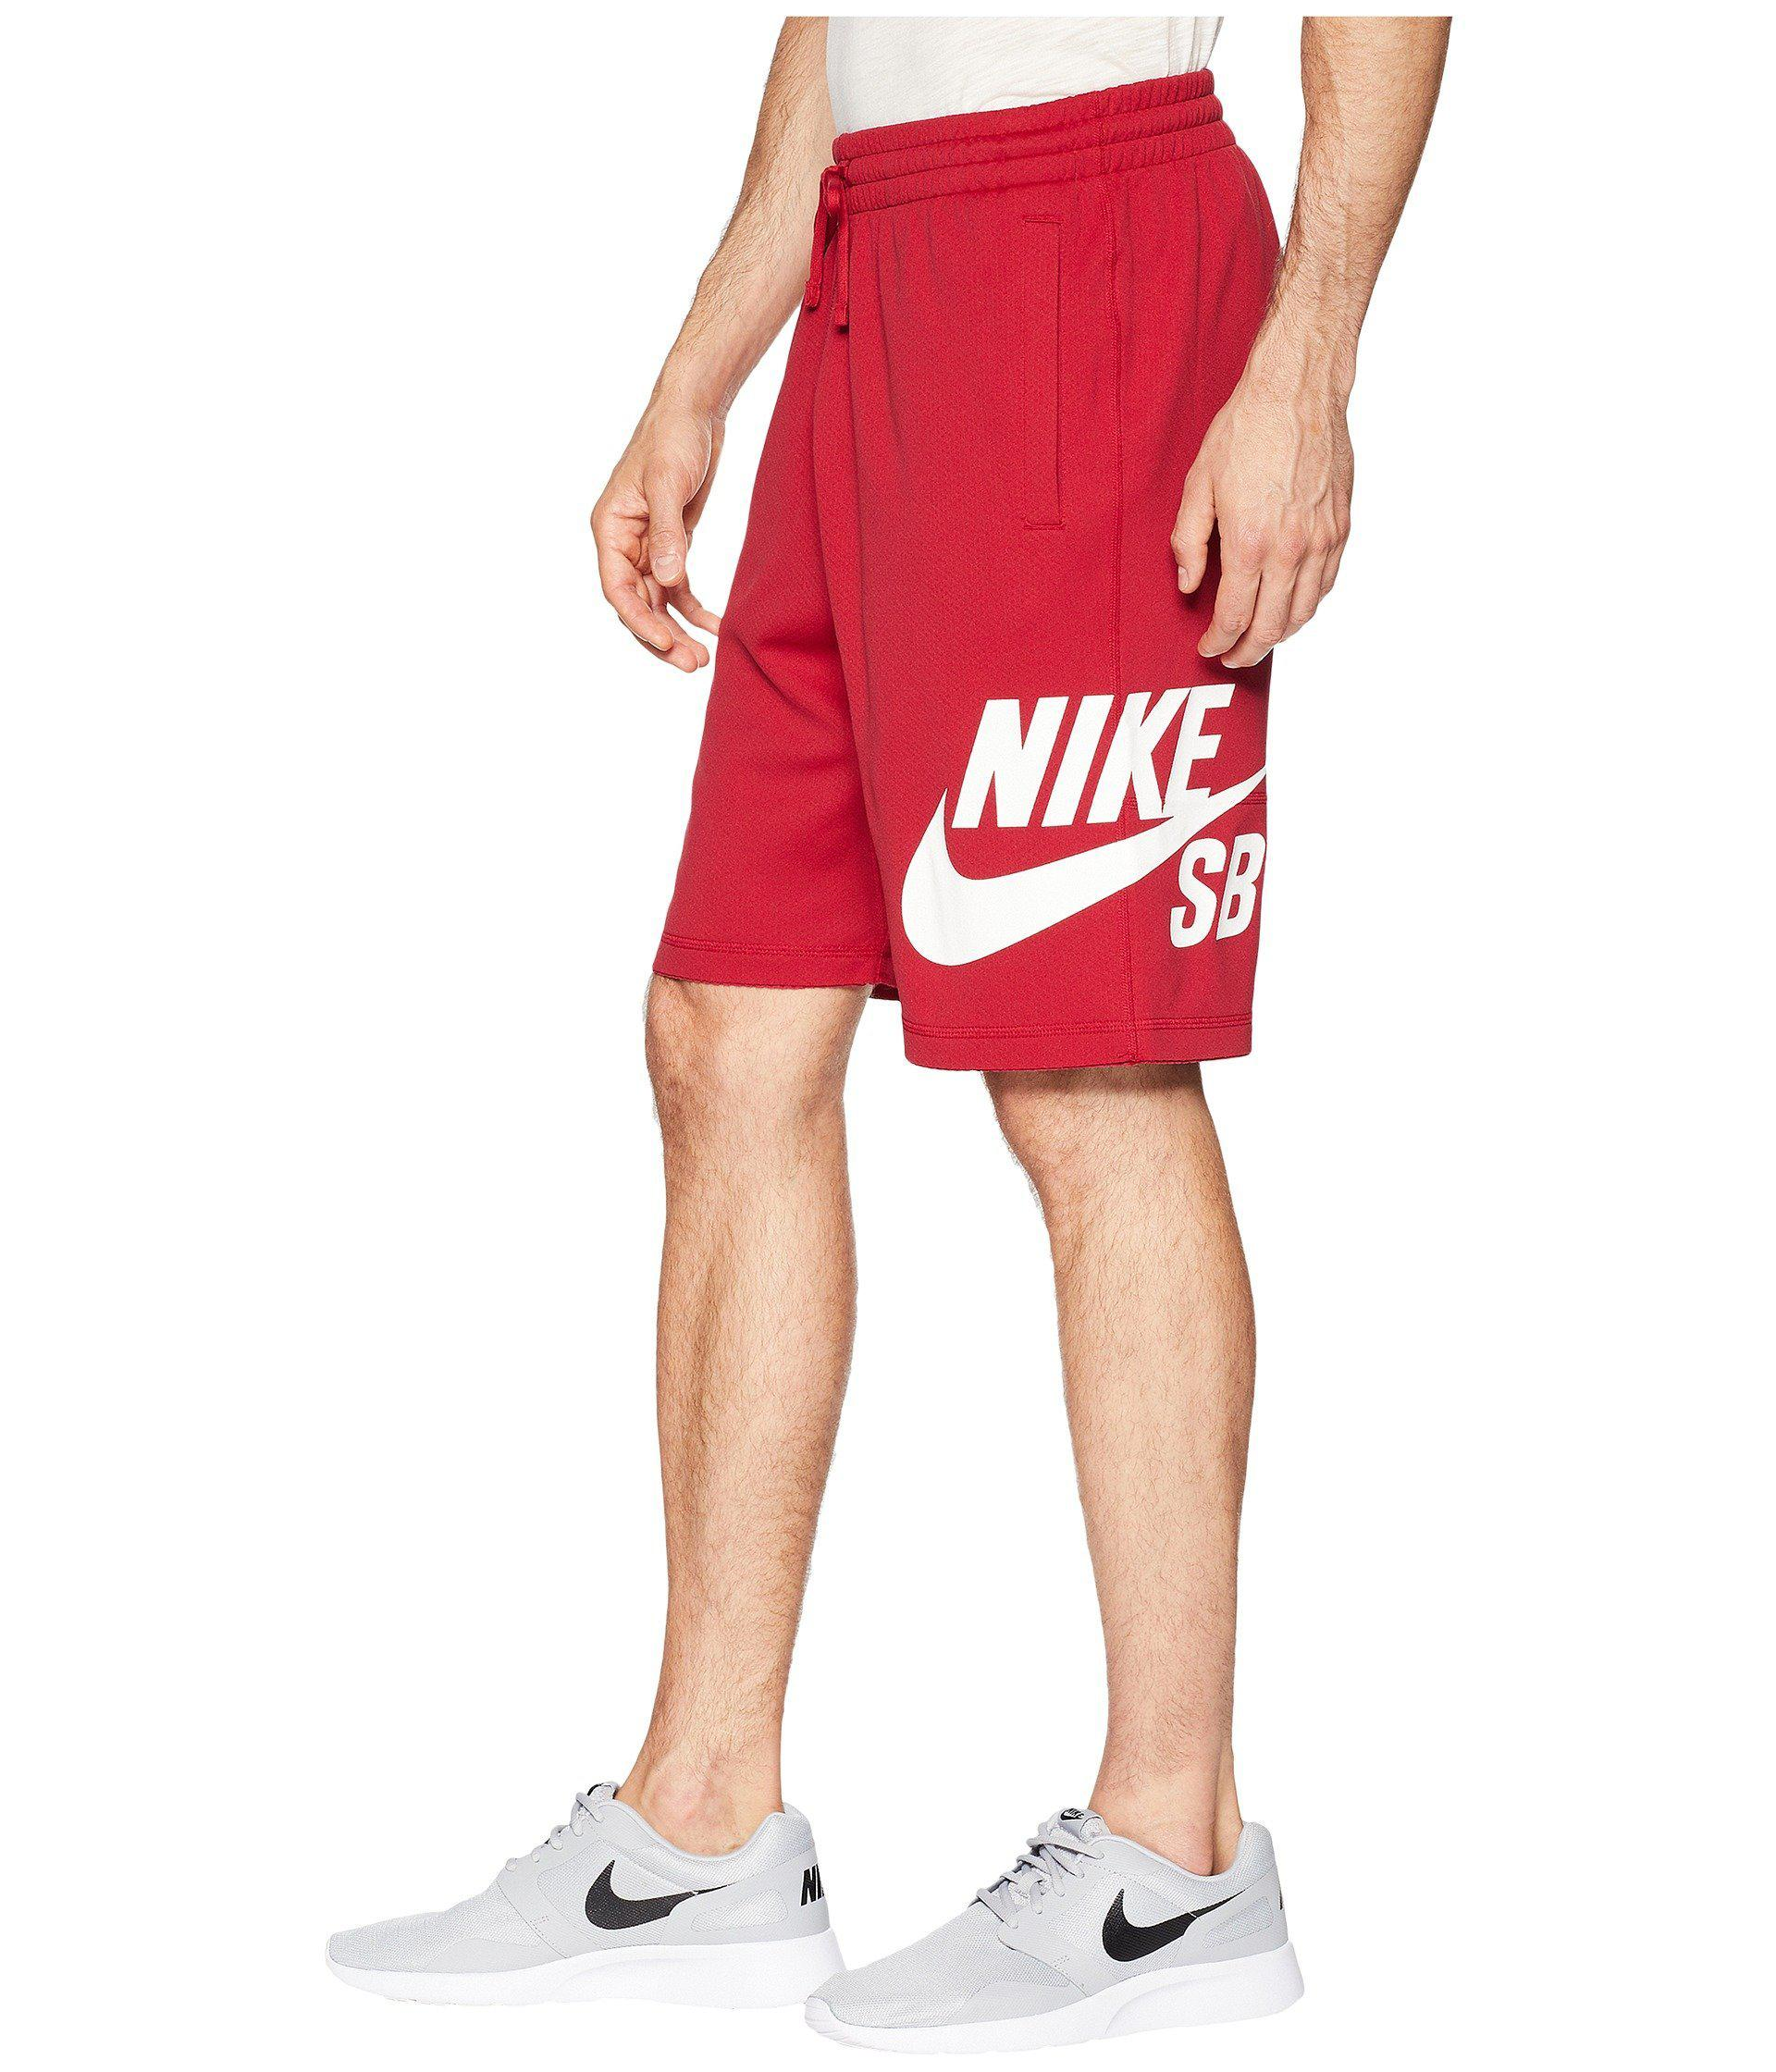 3bb040ae76 Lyst - Nike Sb Dri-fit Short in Red for Men